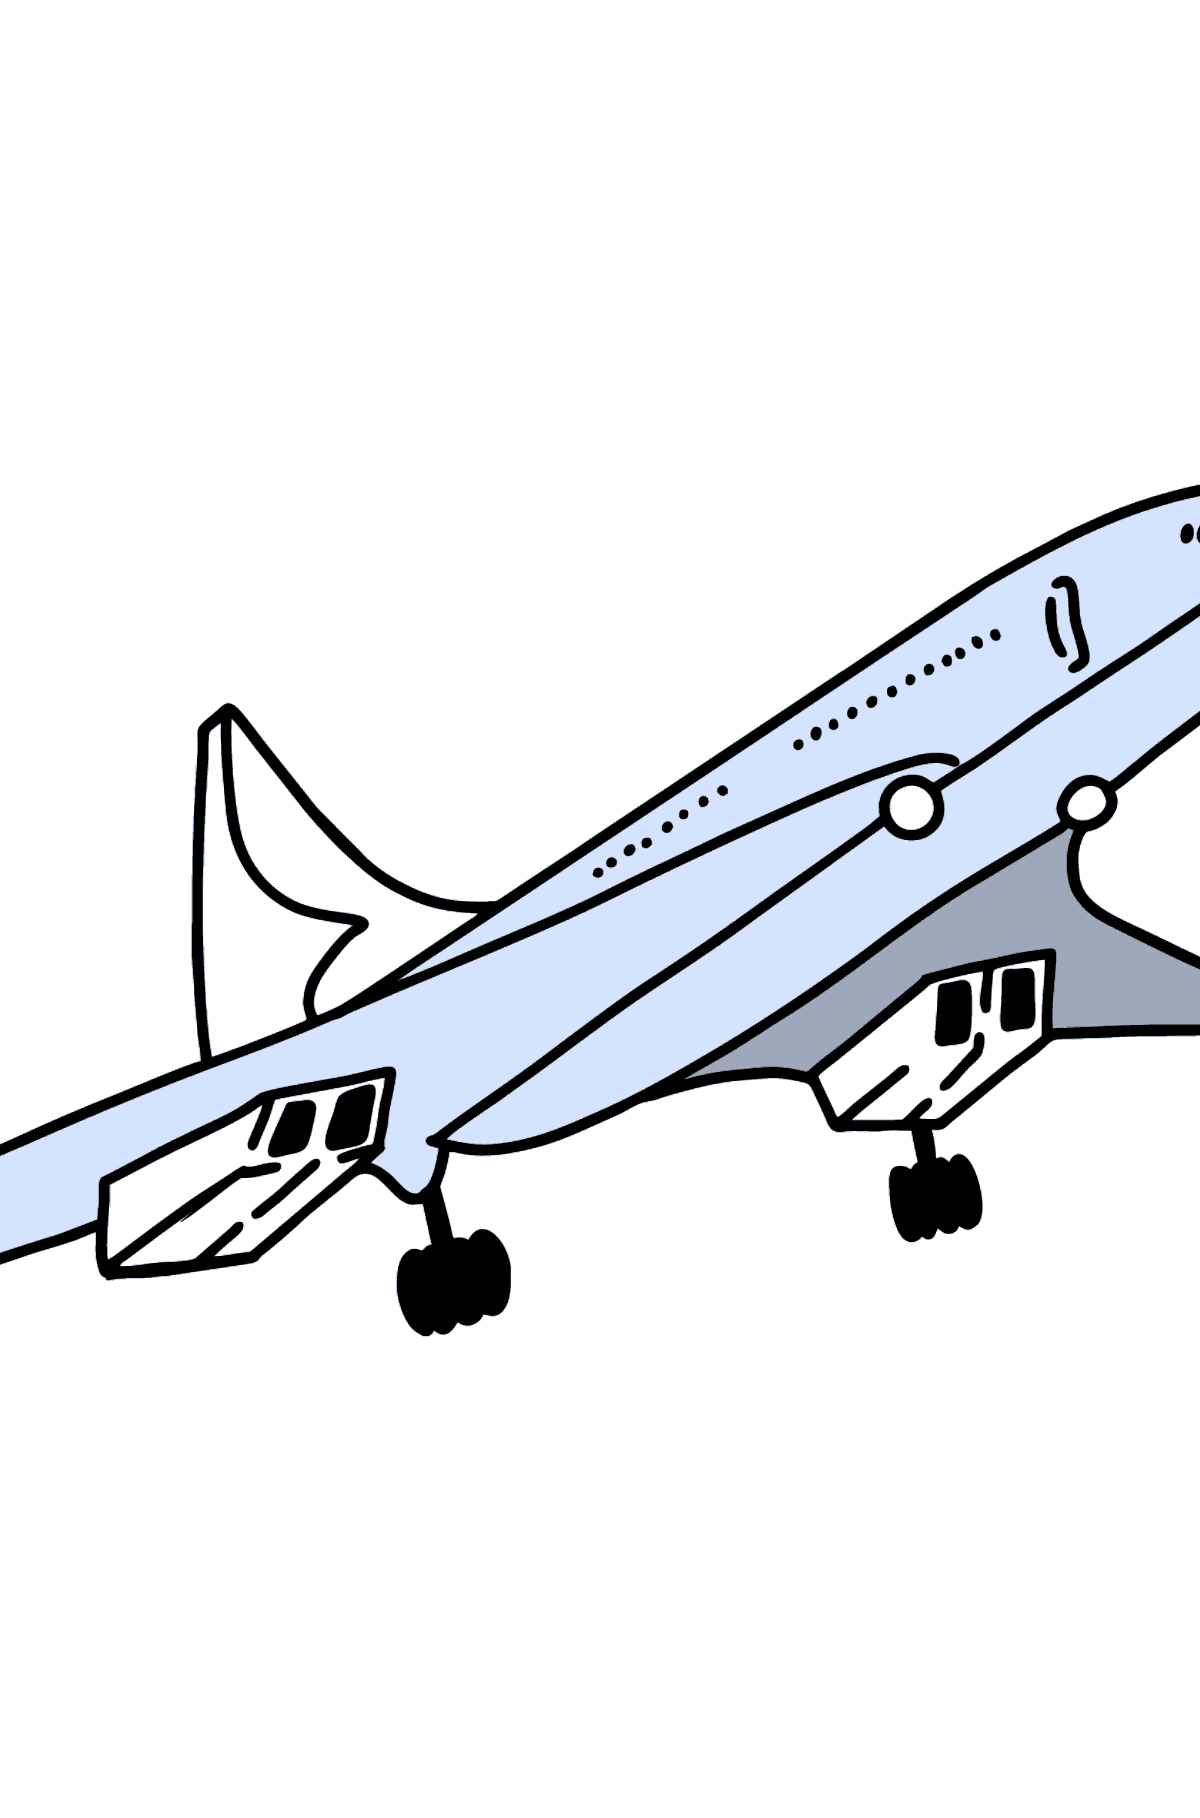 Concorde coloring page - Coloring Pages for Kids